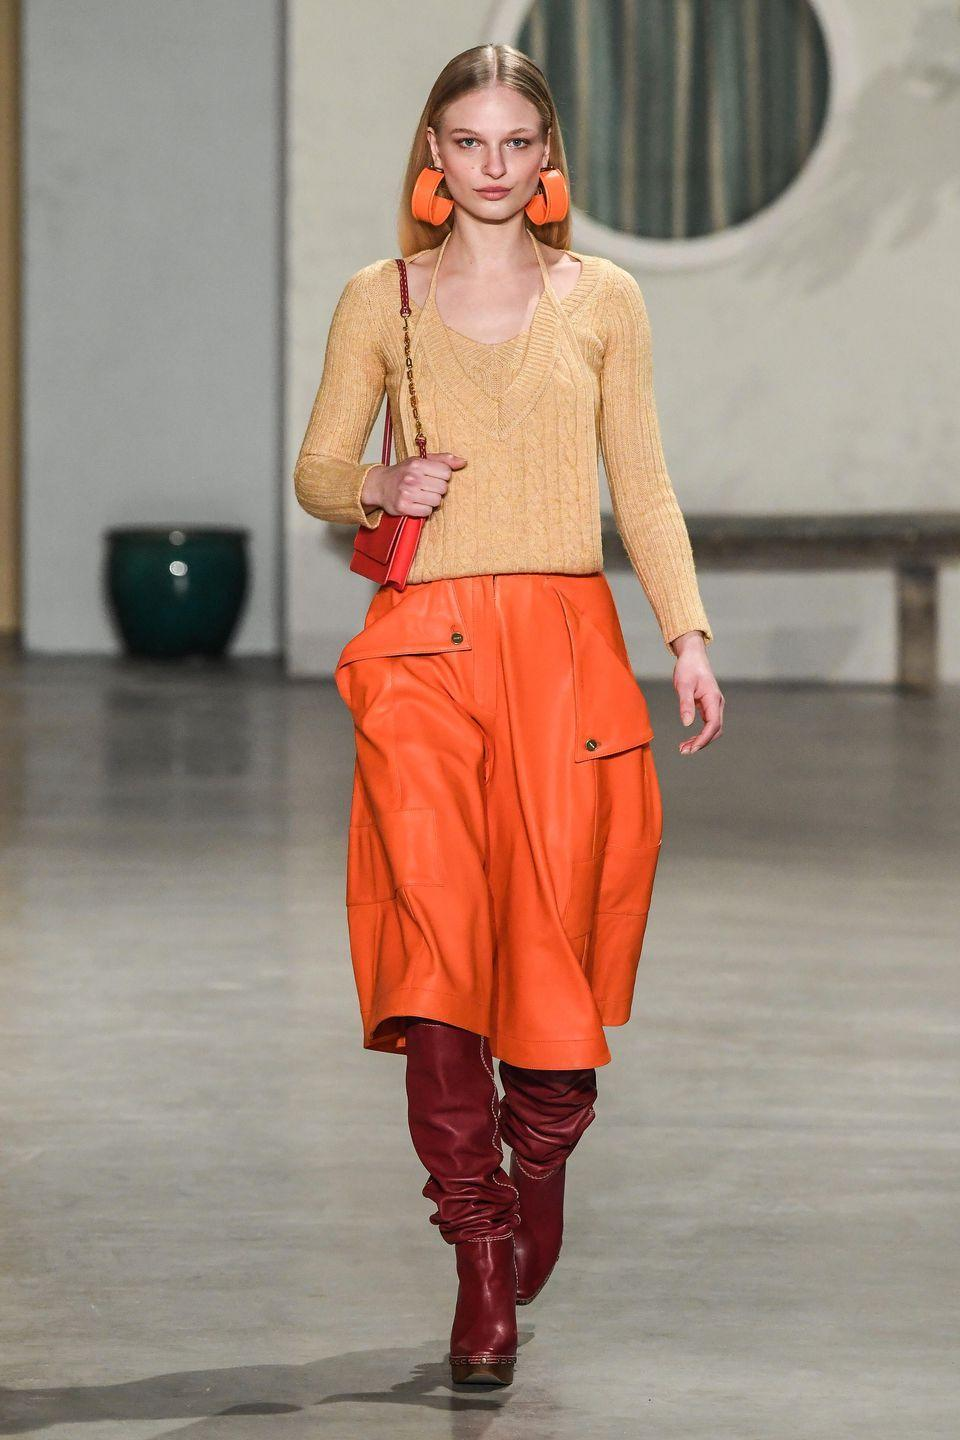 """<p>Simon Porte Jacquemus is that rare designer who truly understands the social media generation. He did create the giant hat and the tiny bags liked 'round the world, after all. For Fall 2019, he created his own little world, """"Place Jacquemus,"""" a colorful, Insta-worthy set inspired by a fictional town in the South of France-with colorful doors, distressed wooden benches, and clothes lines. The looks were South of France-worthy as well-with wide leg trousers under elongated vests and airy suiting in shades of light blue and cream. This is Fall though, after all, and the Jacquemus girl needs some knits, boots and coats and the designer was happy to comply with a layered, monochrome hot pink look, orange leather skirts and neutral sweaters. -<em>Kerry Pieri</em></p>"""